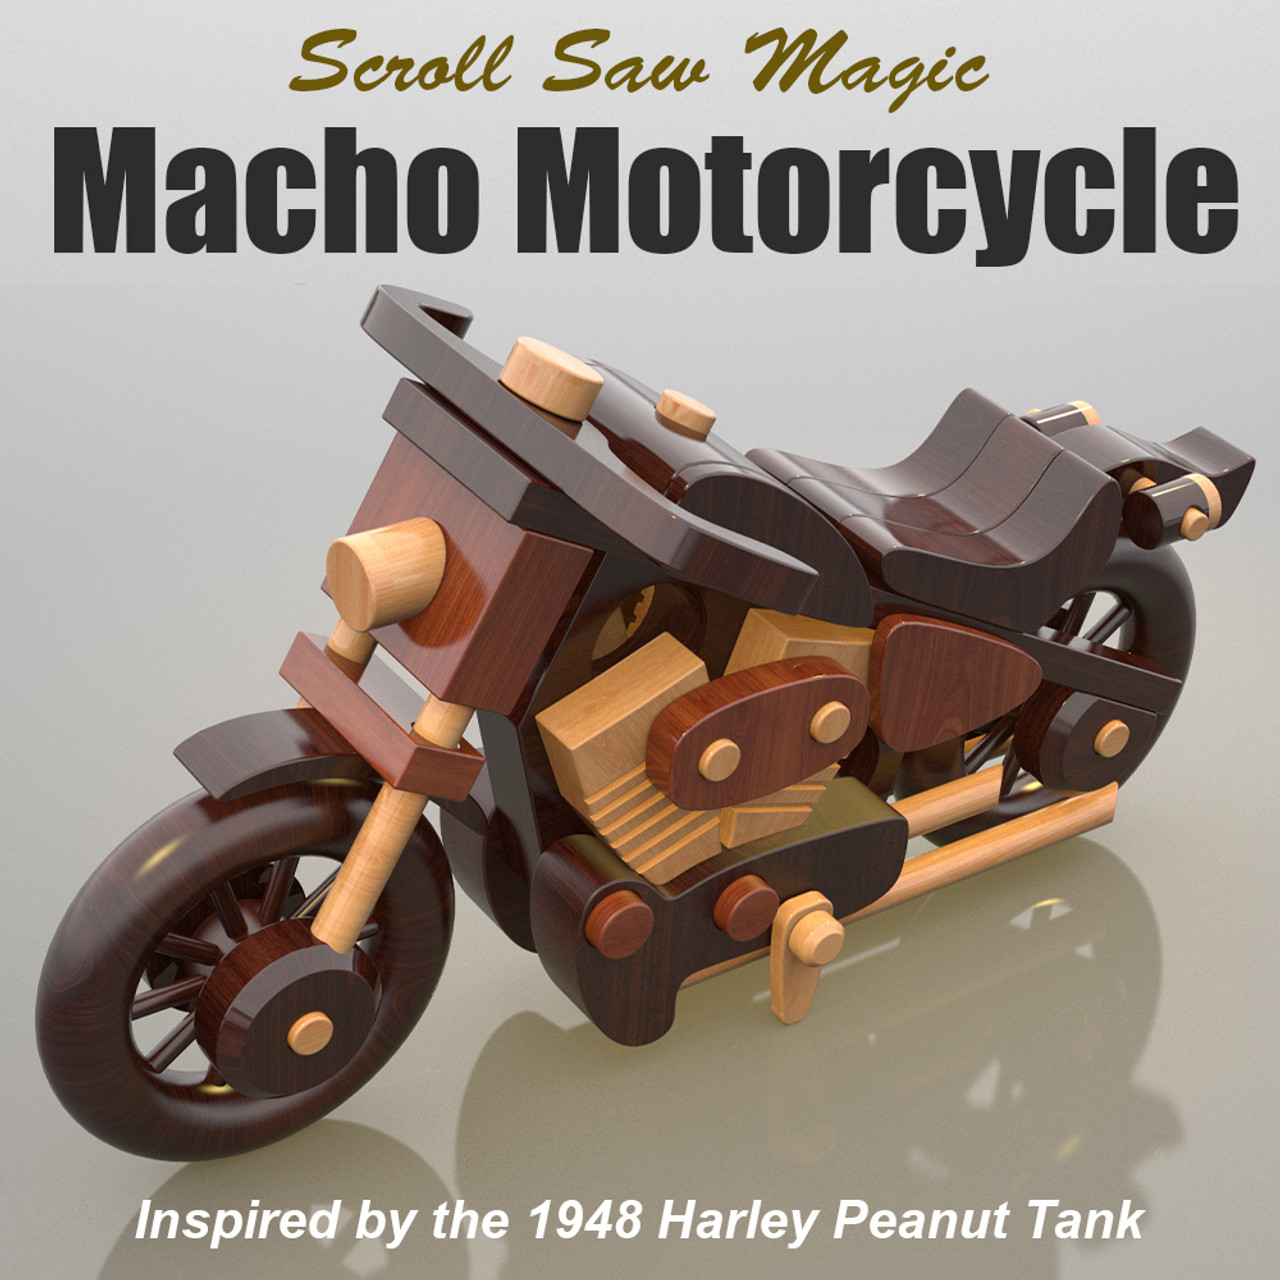 scroll saw magic macho motorcycle wood toy plans (pdf download)